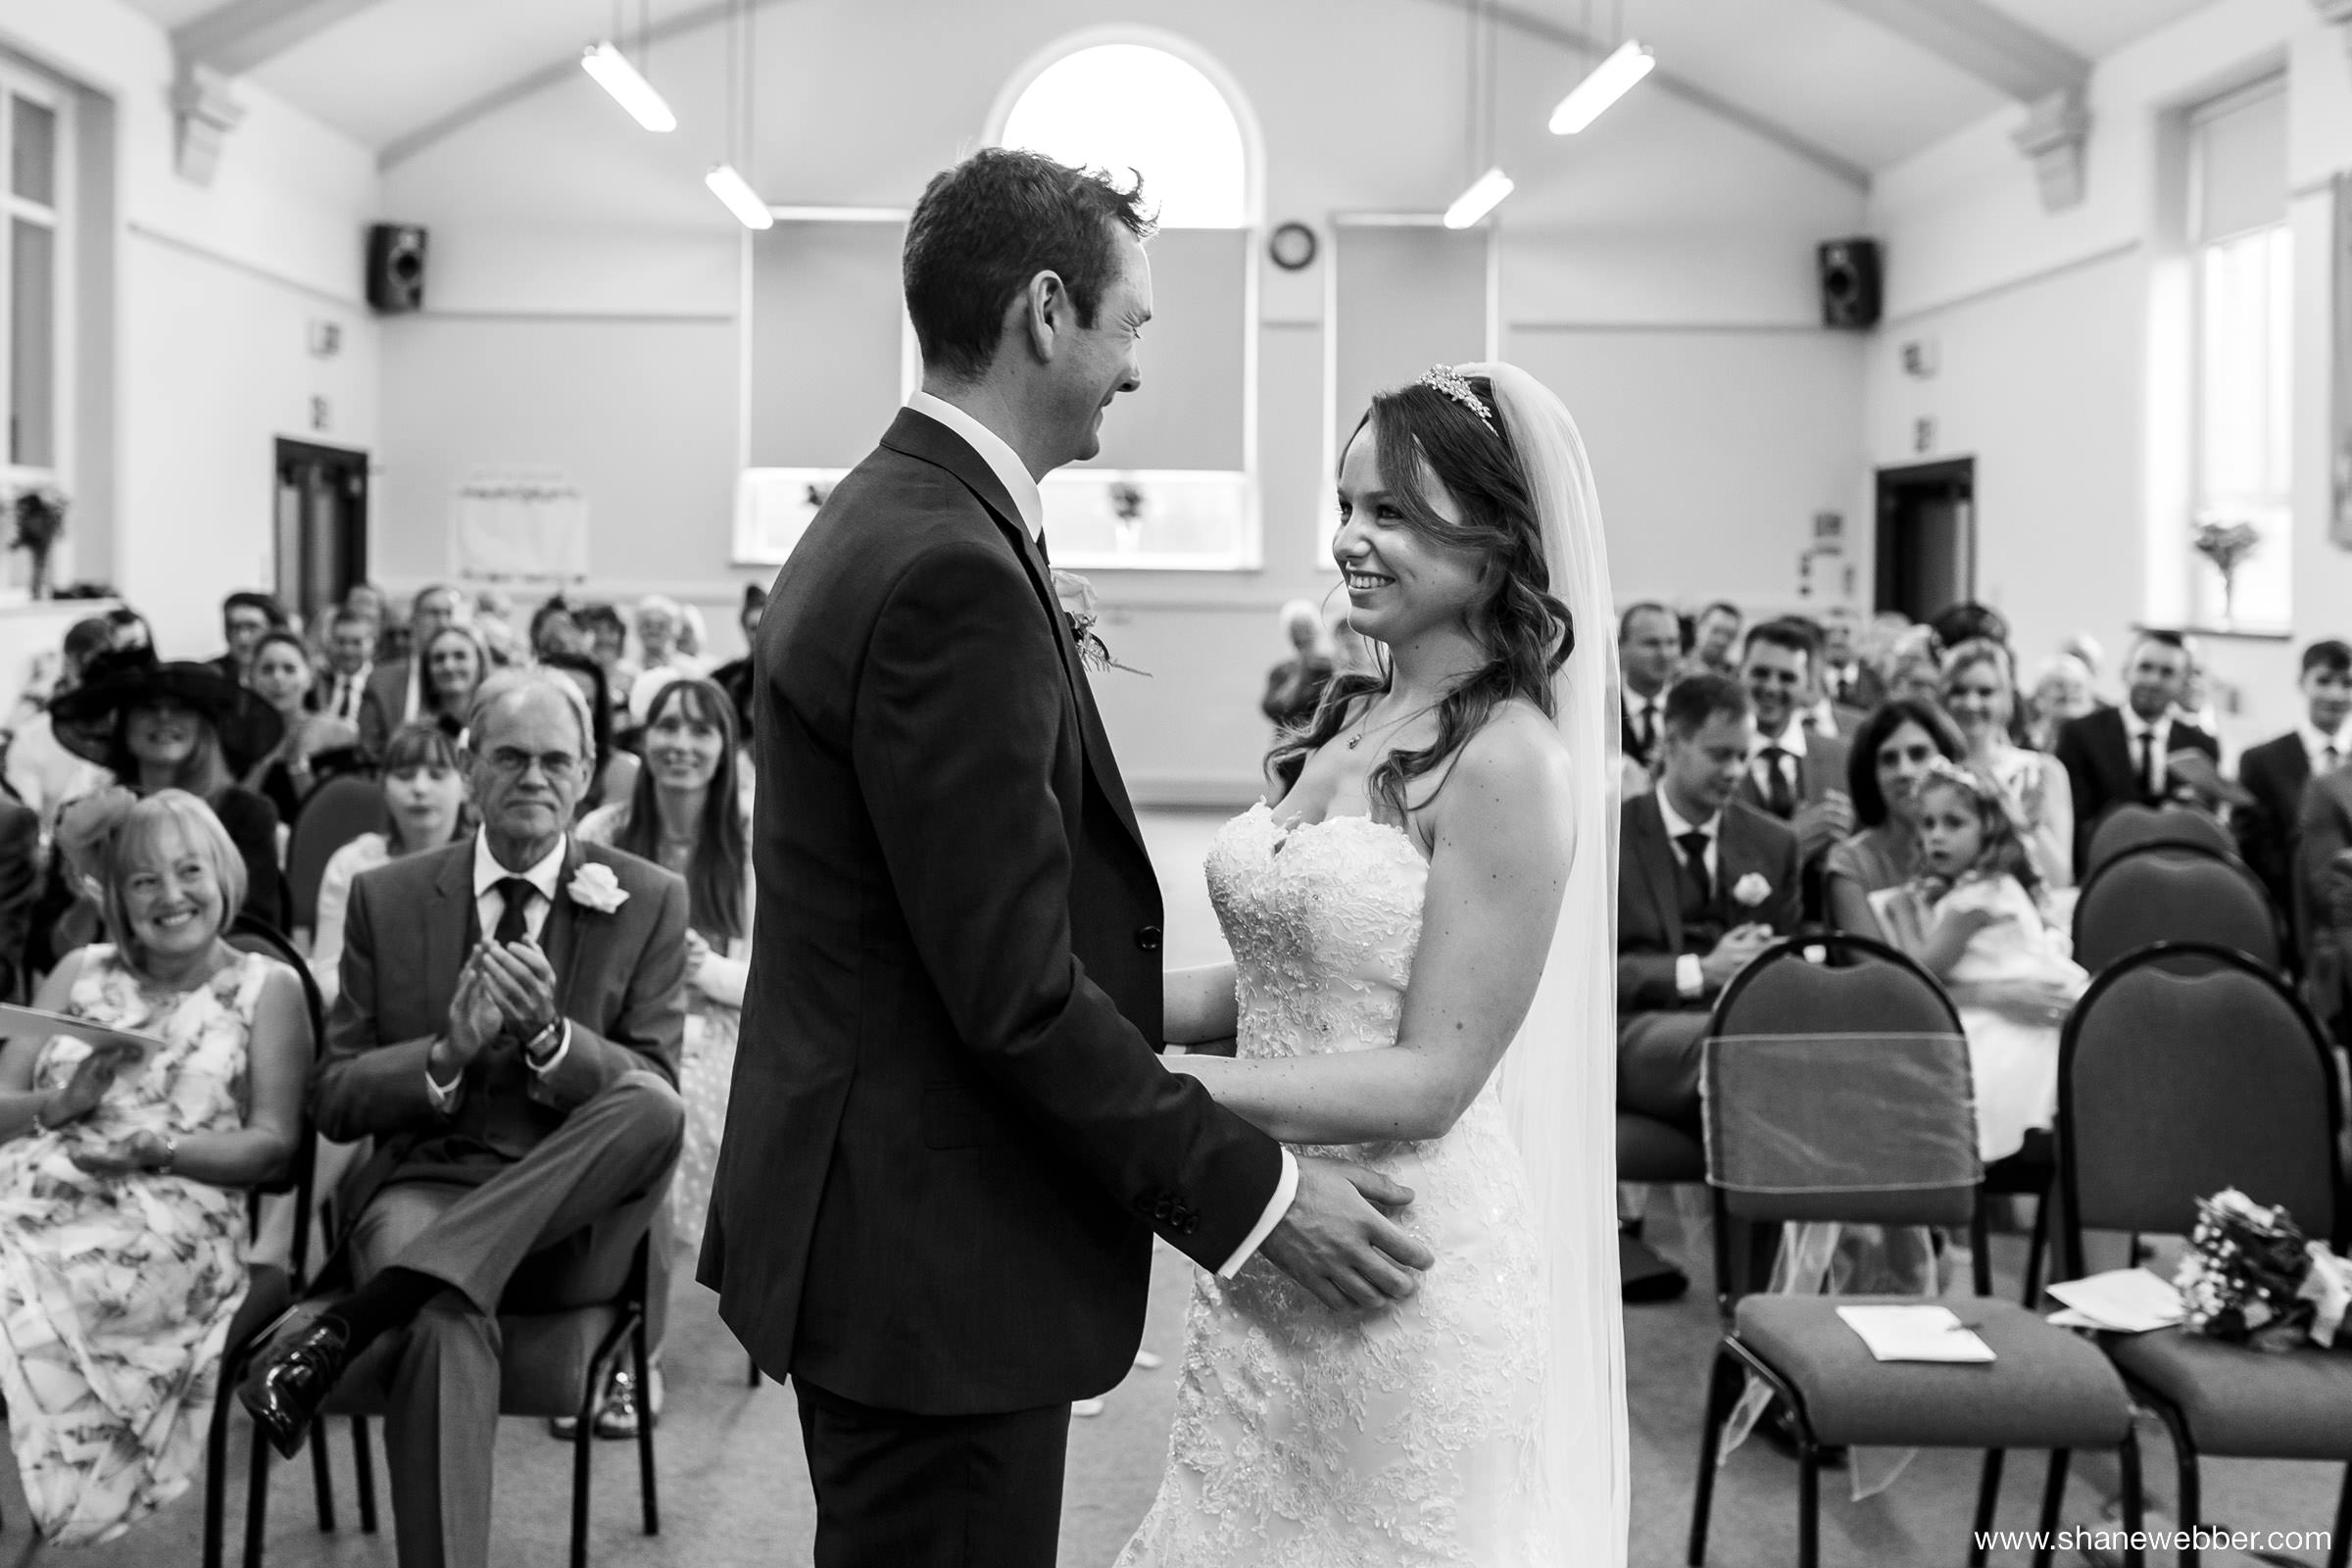 Chadderton Community Church wedding photos